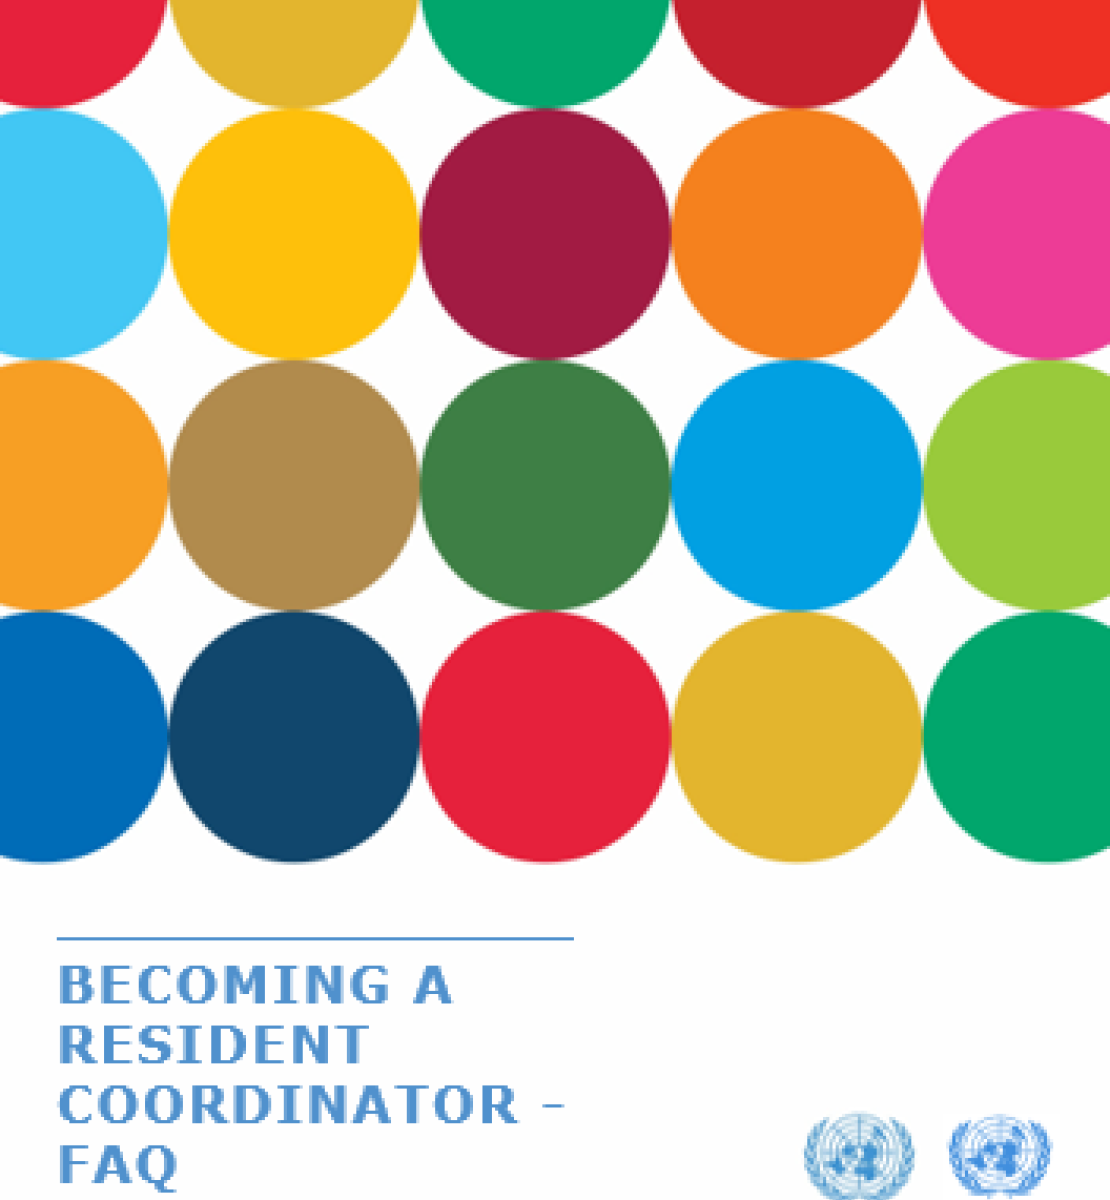 this shows the covers for the FAQ which are colorful dots with the logos of UNDCO and OCHA at the bottom, alongside the title of the document